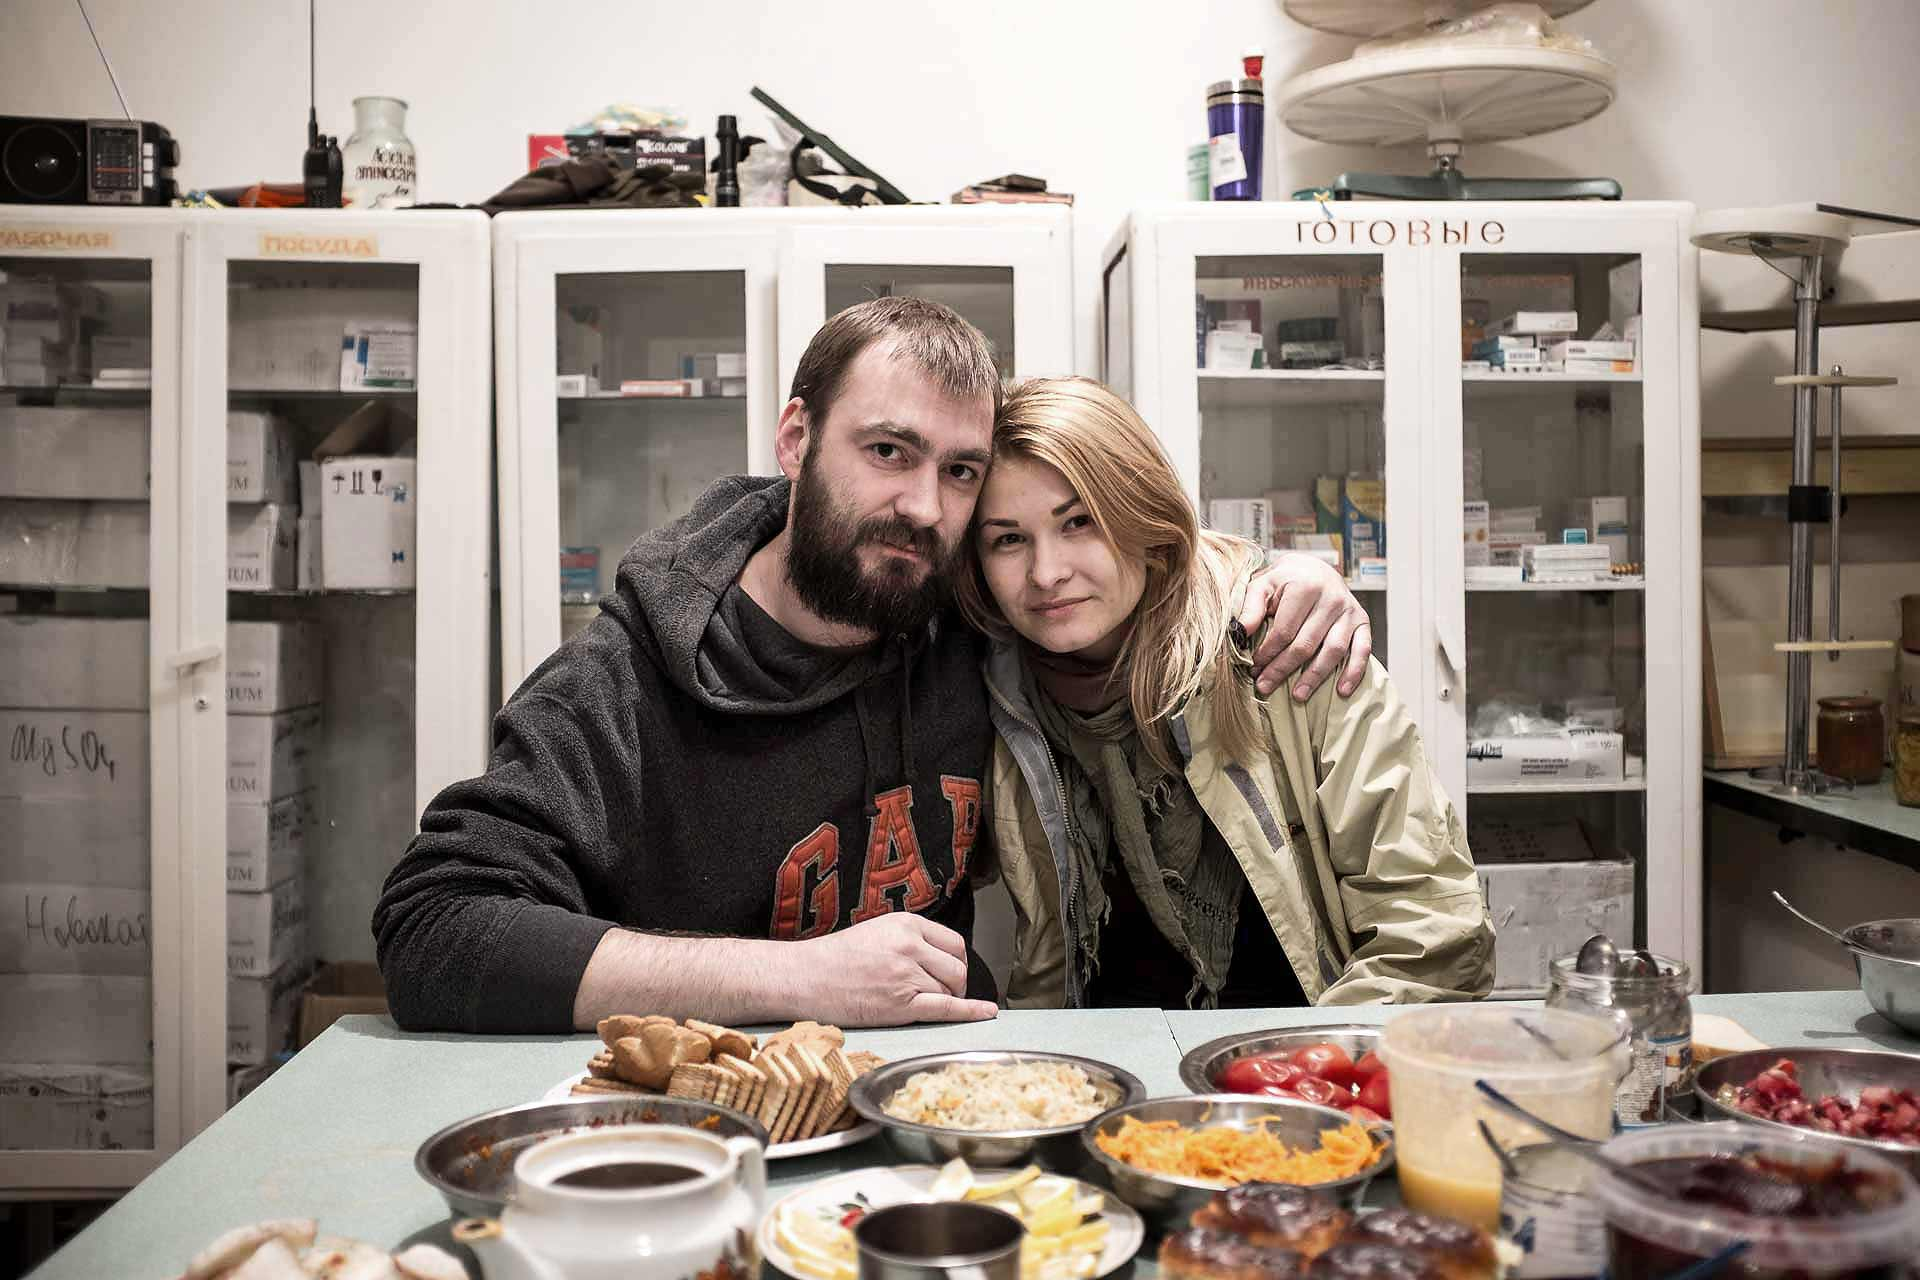 Valentyn and Evgeniya, 32 and 24, volunteers from Karkiv. They brought goods to the hospital and pursued their road to Lugansk Oblast by night. Highly involved in volunteering, in Ukraine but also abroad, they aim at showing to Europe authorities the real war that take place in east of Ukraine. Bakhmout - UKRAINE